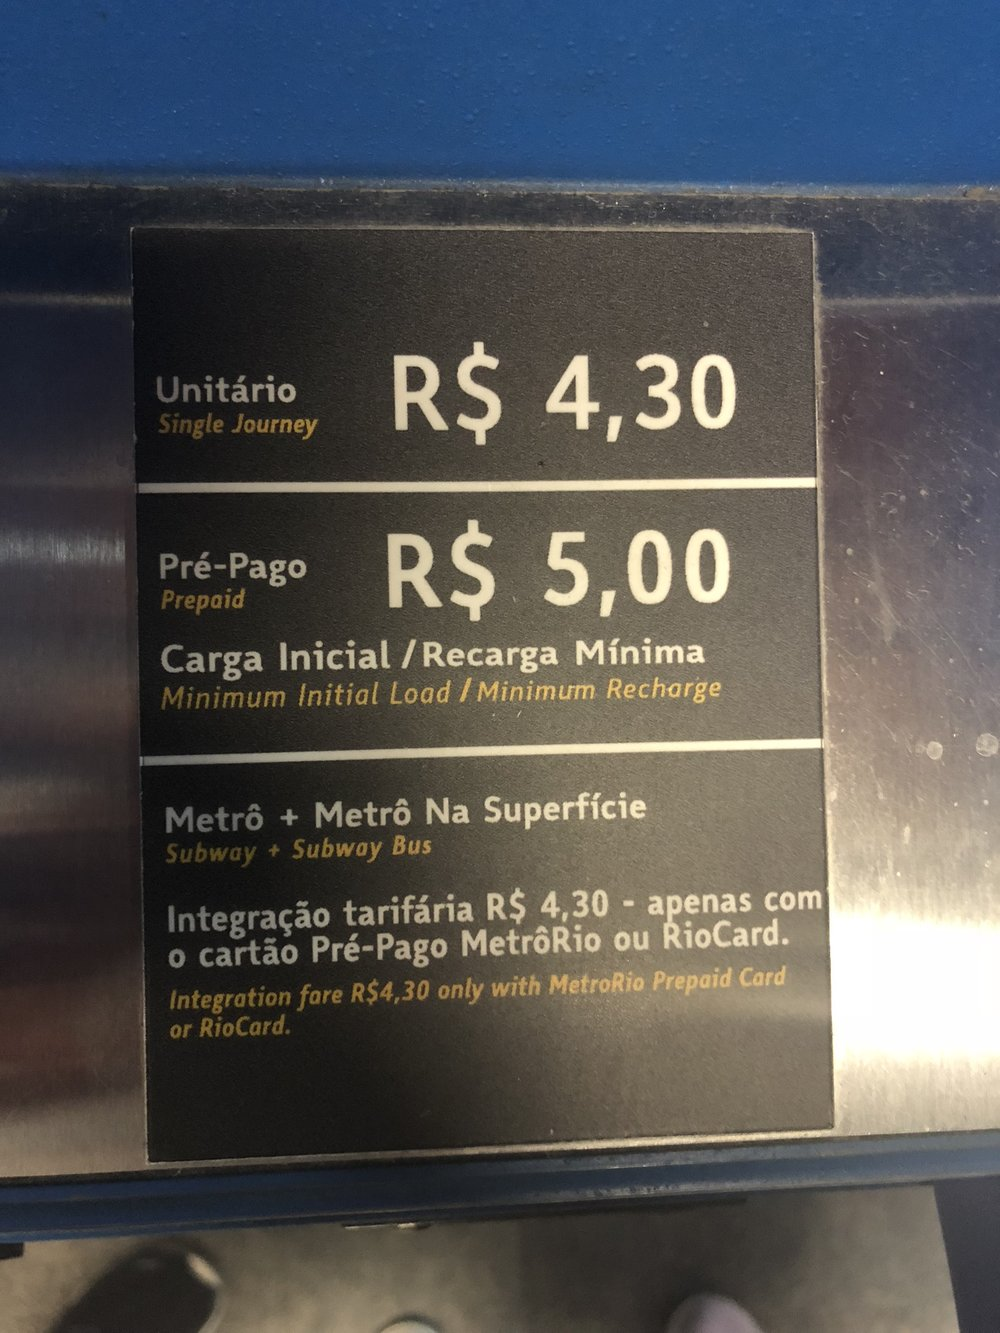 Prices for the Rio Subway